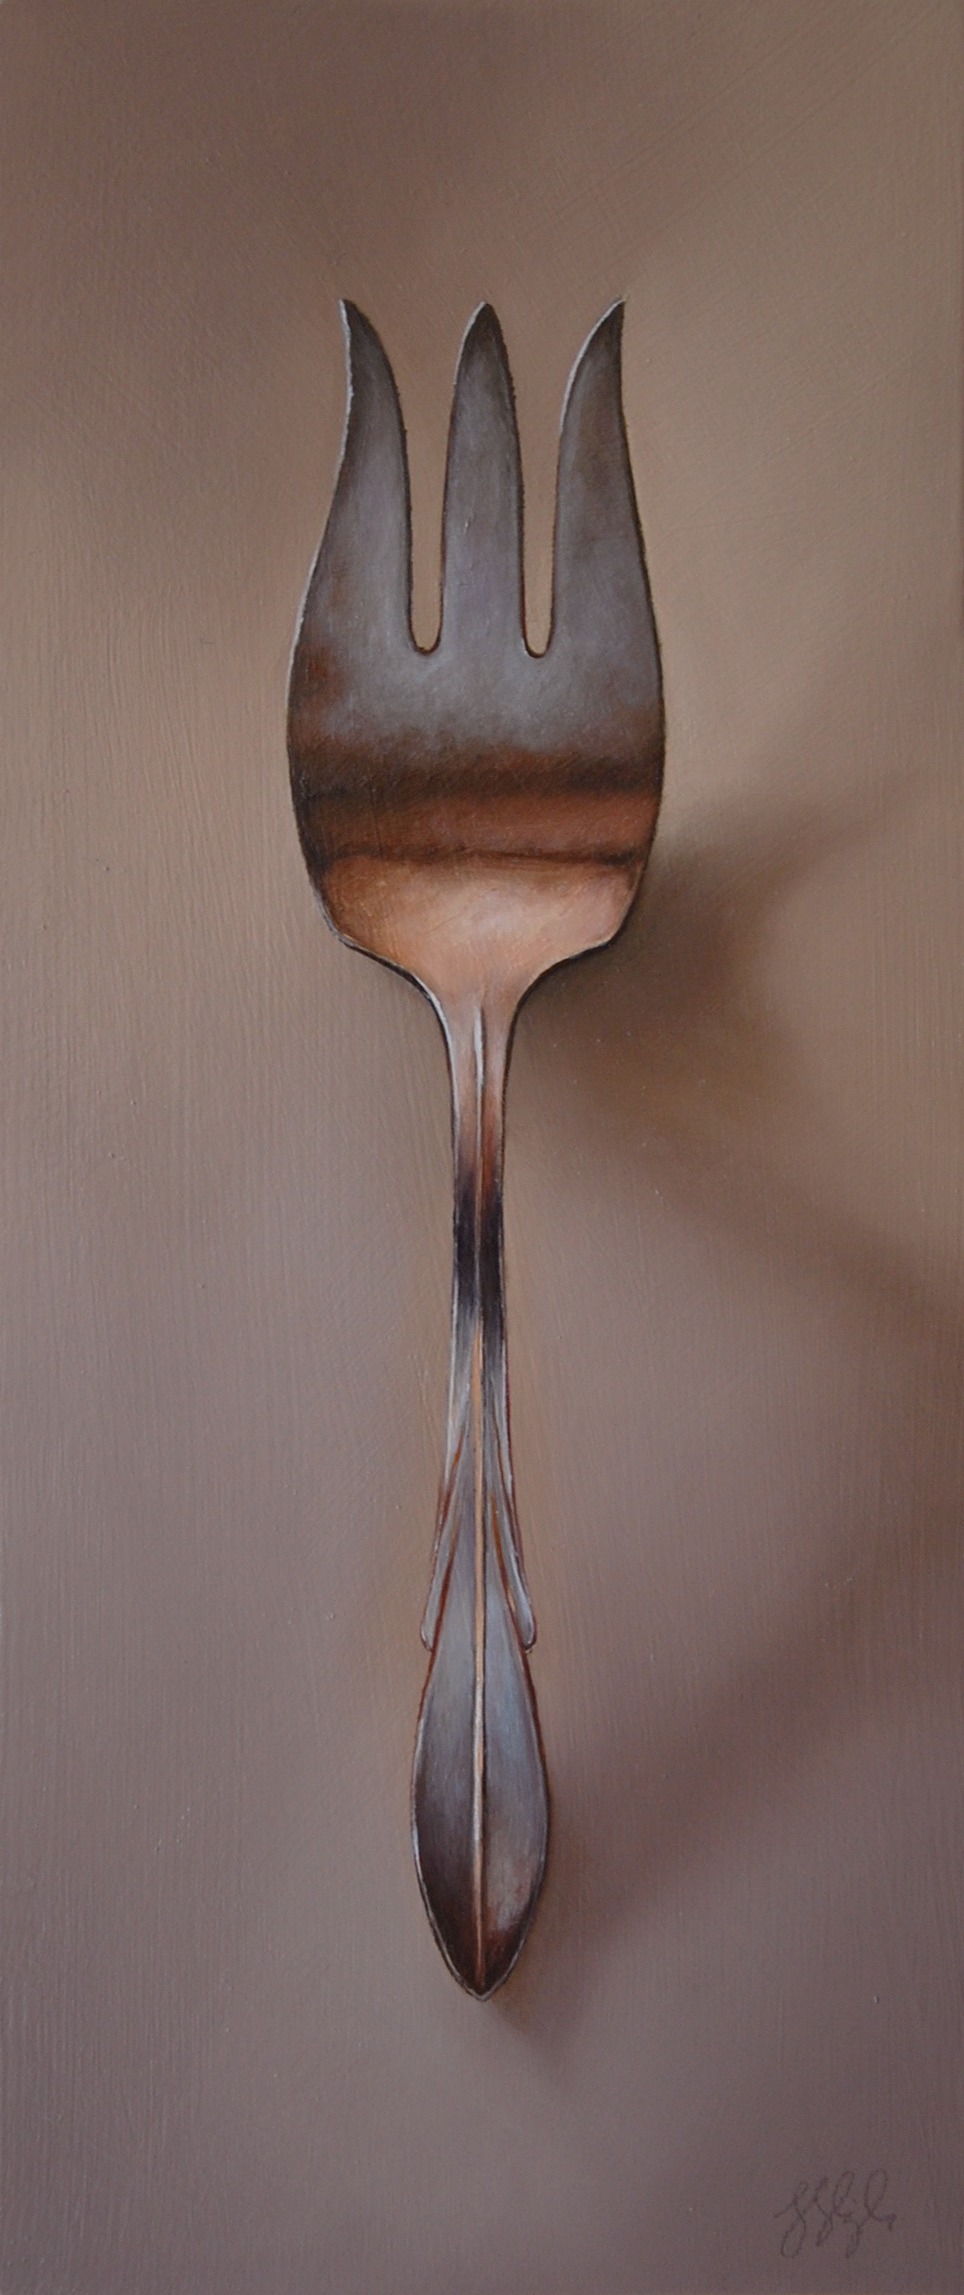 Silver Fork #47, The Maestro  Oil on panel, 2016. 12x5""